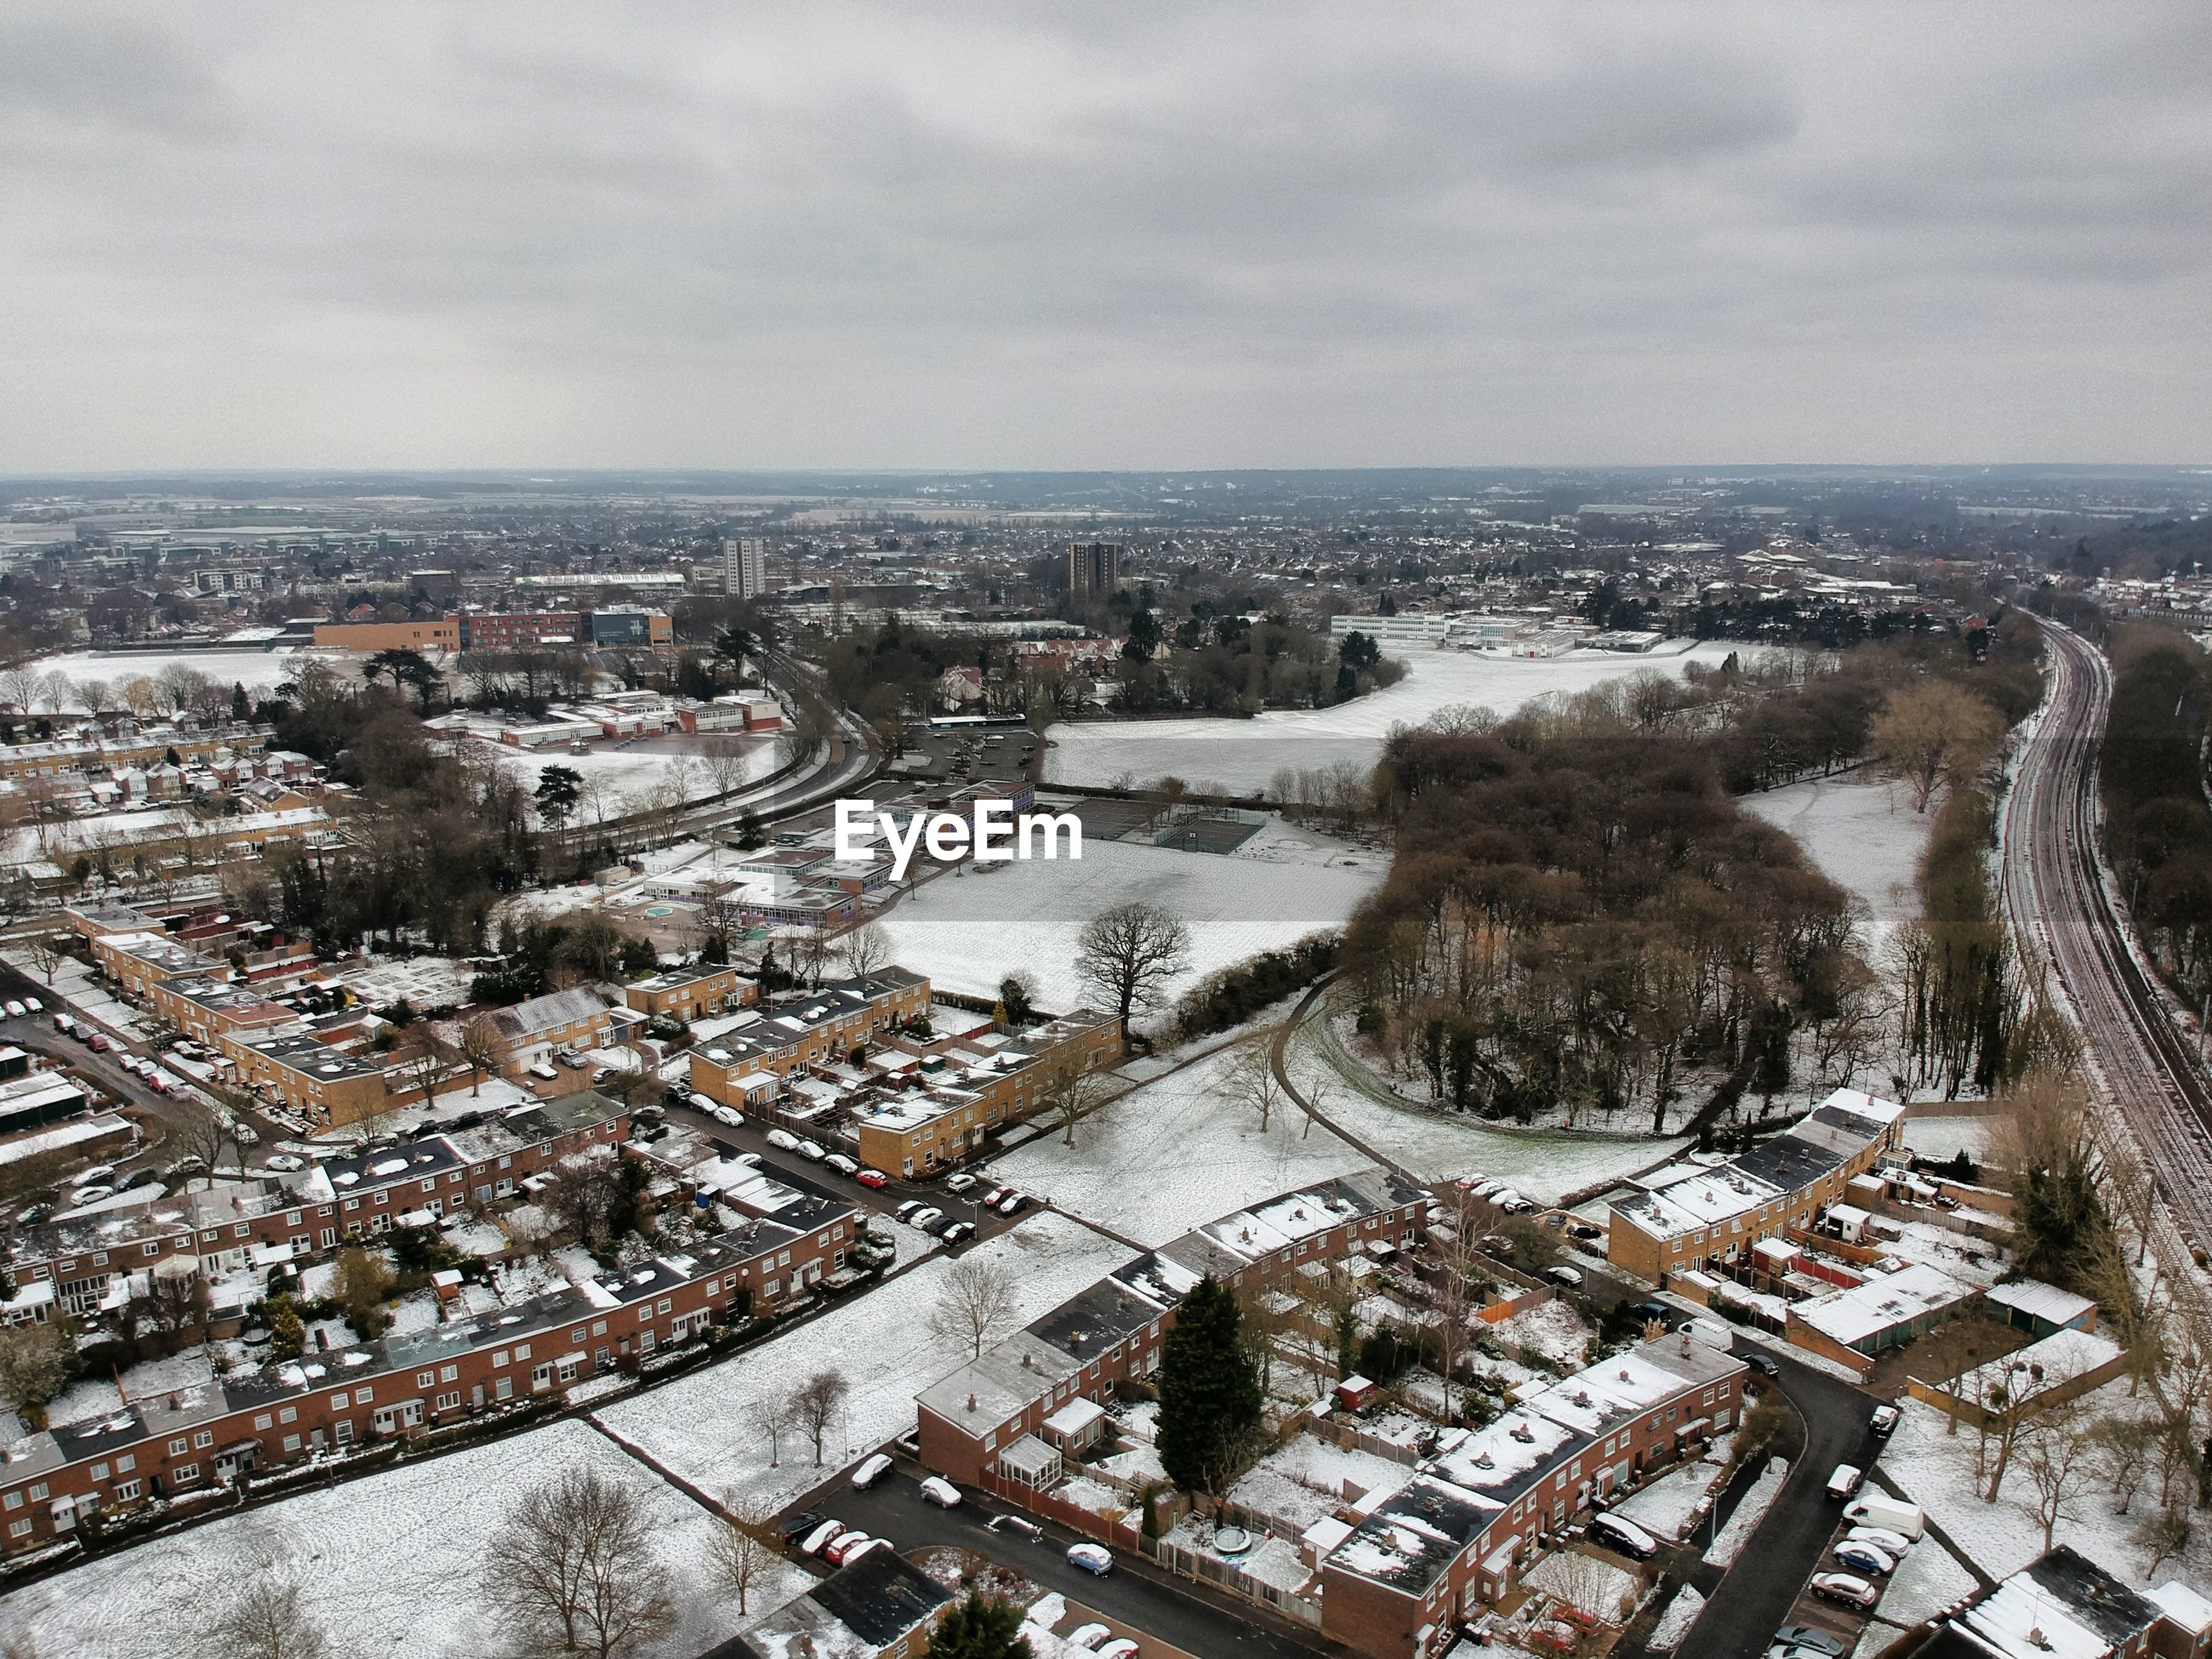 Aerial view of snowy townscape against sky